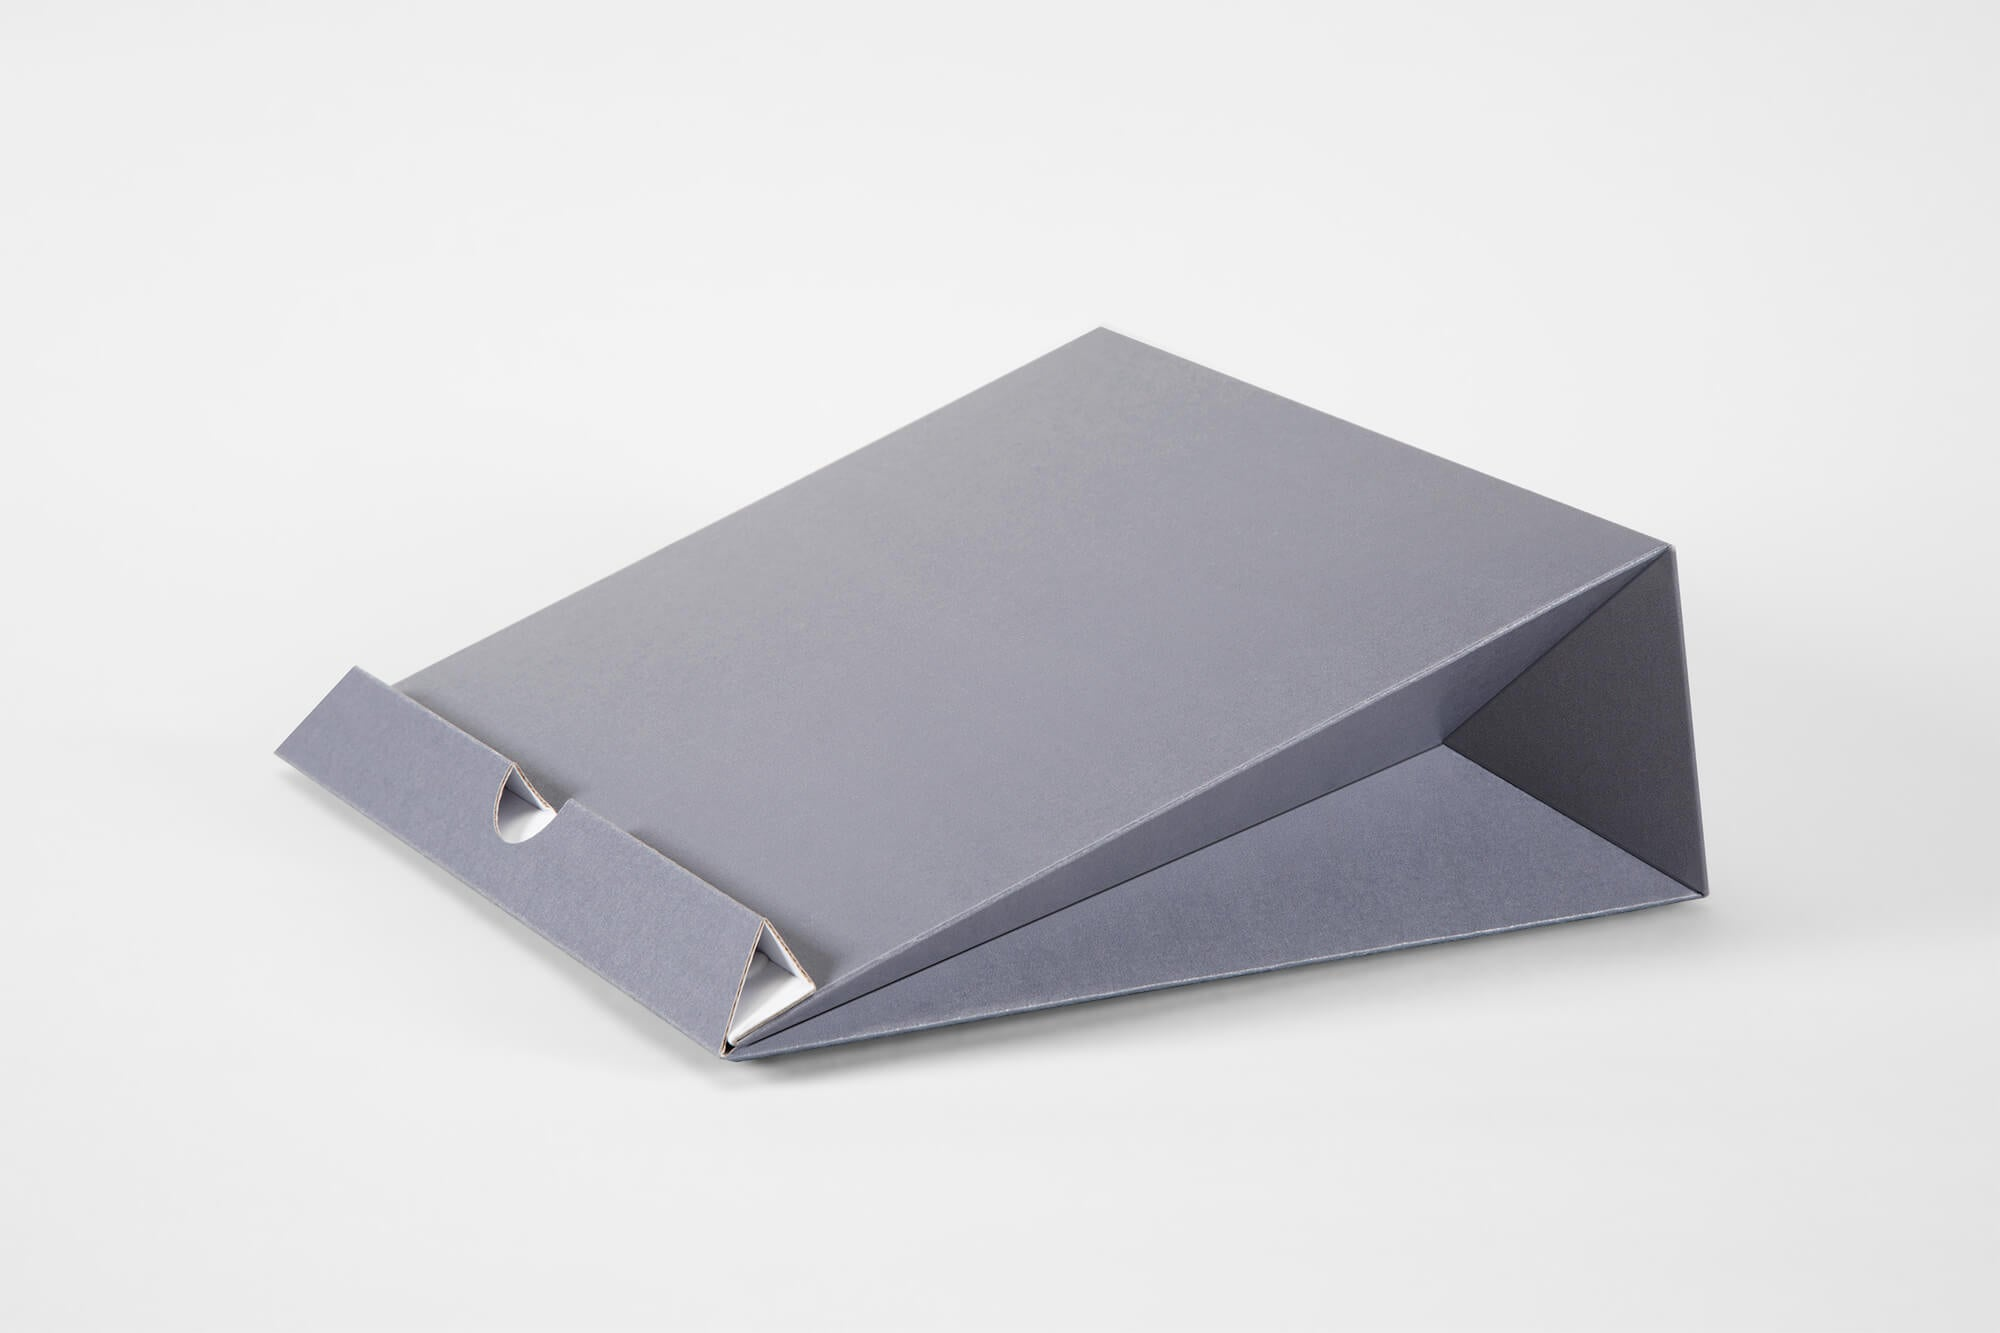 Space gray origami laptop stand